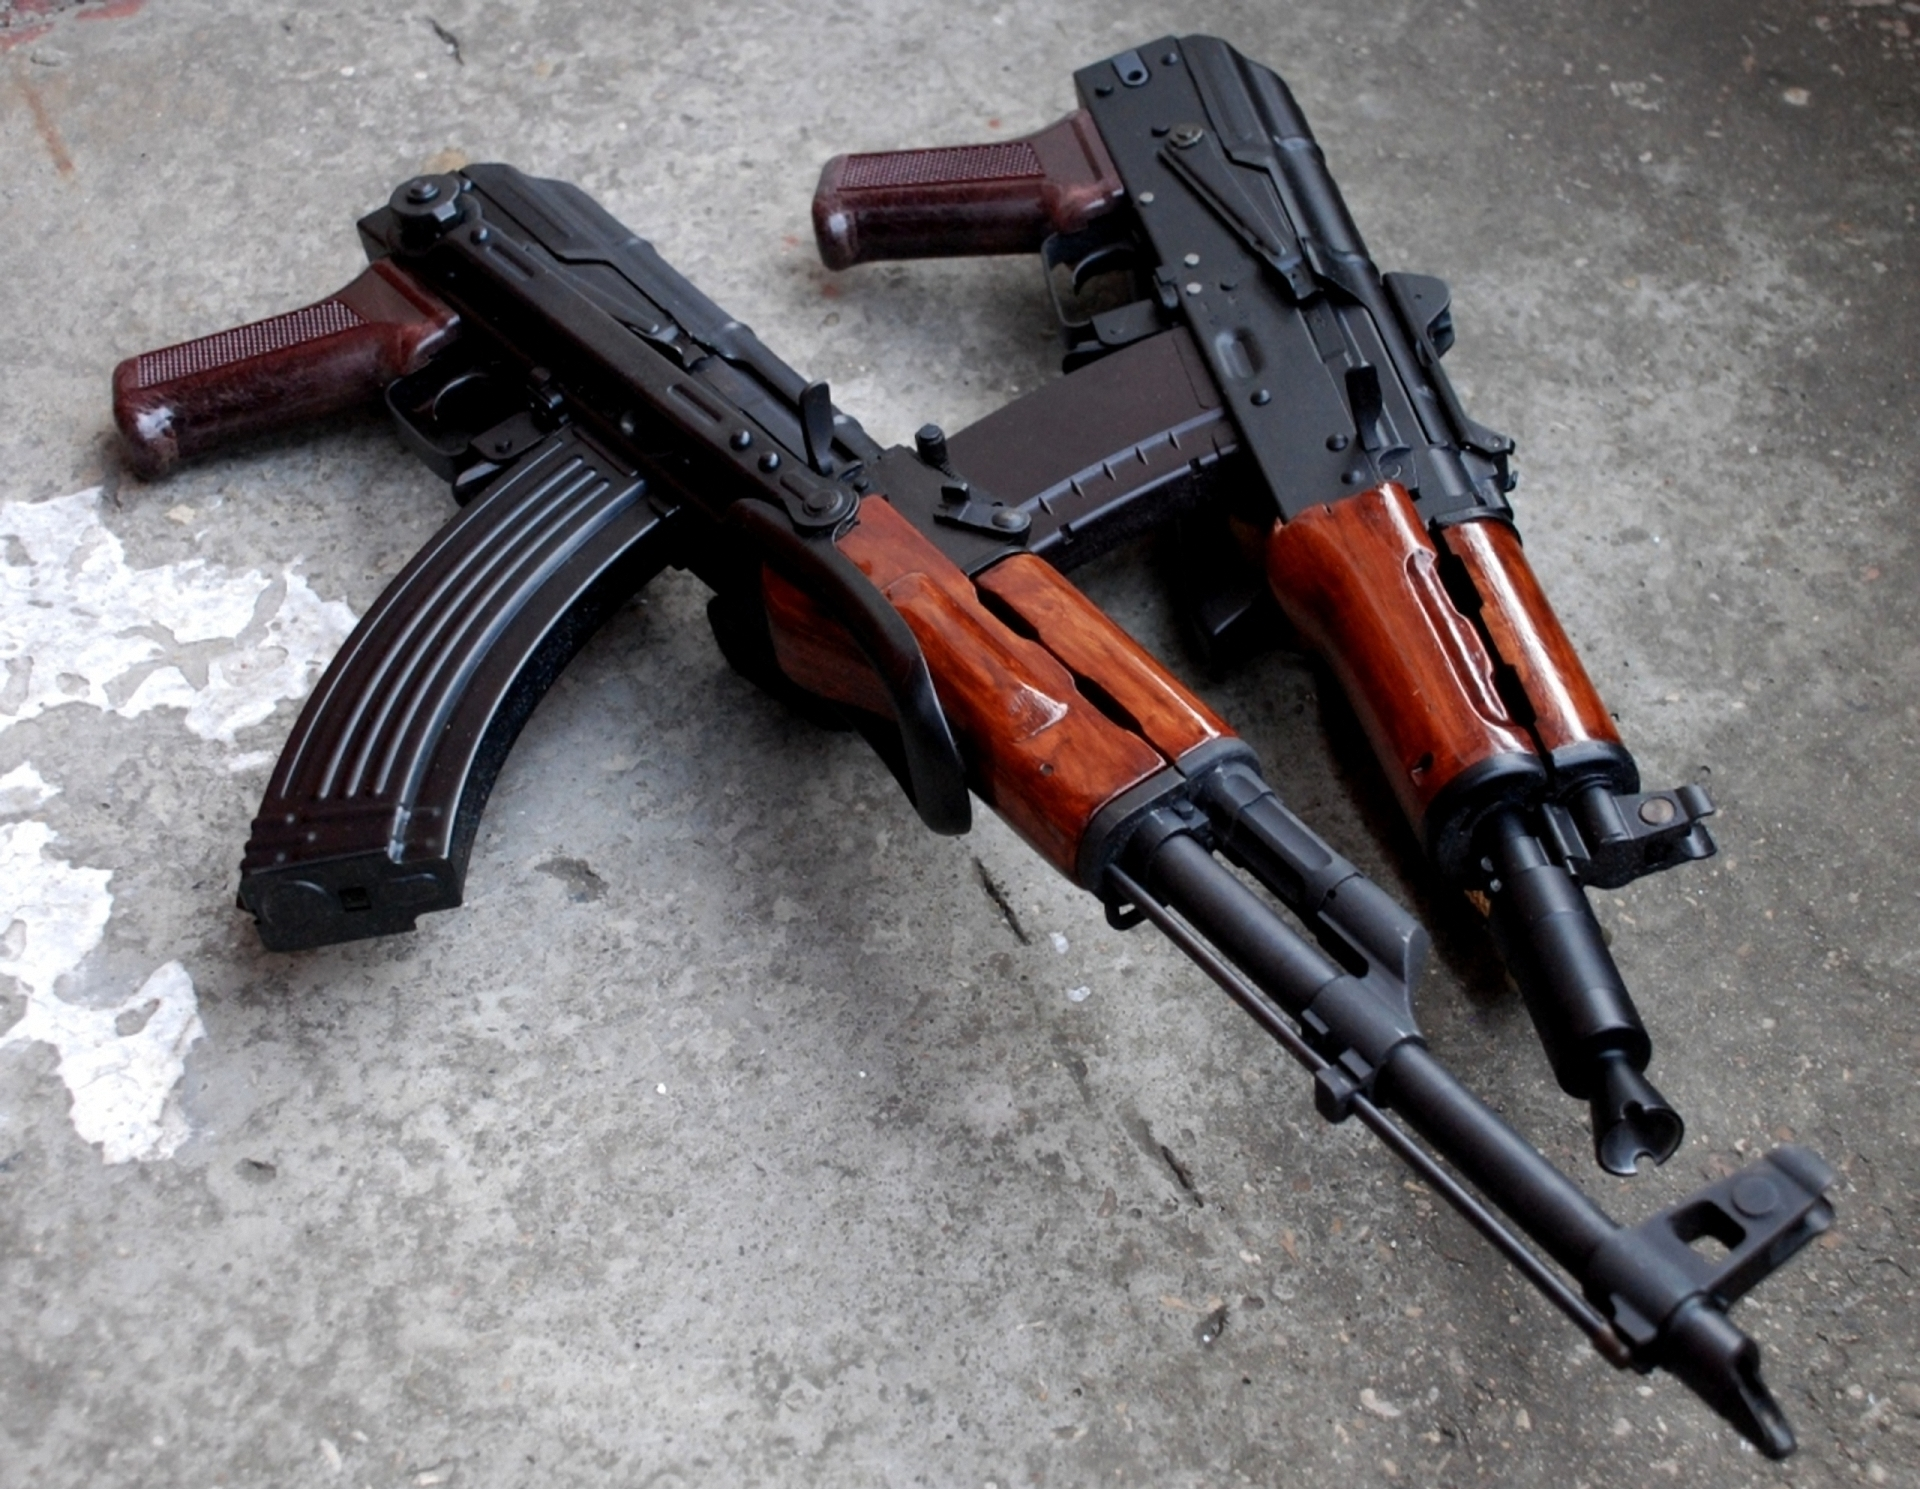 AK-47 Full HD Wallpaper And Background Image